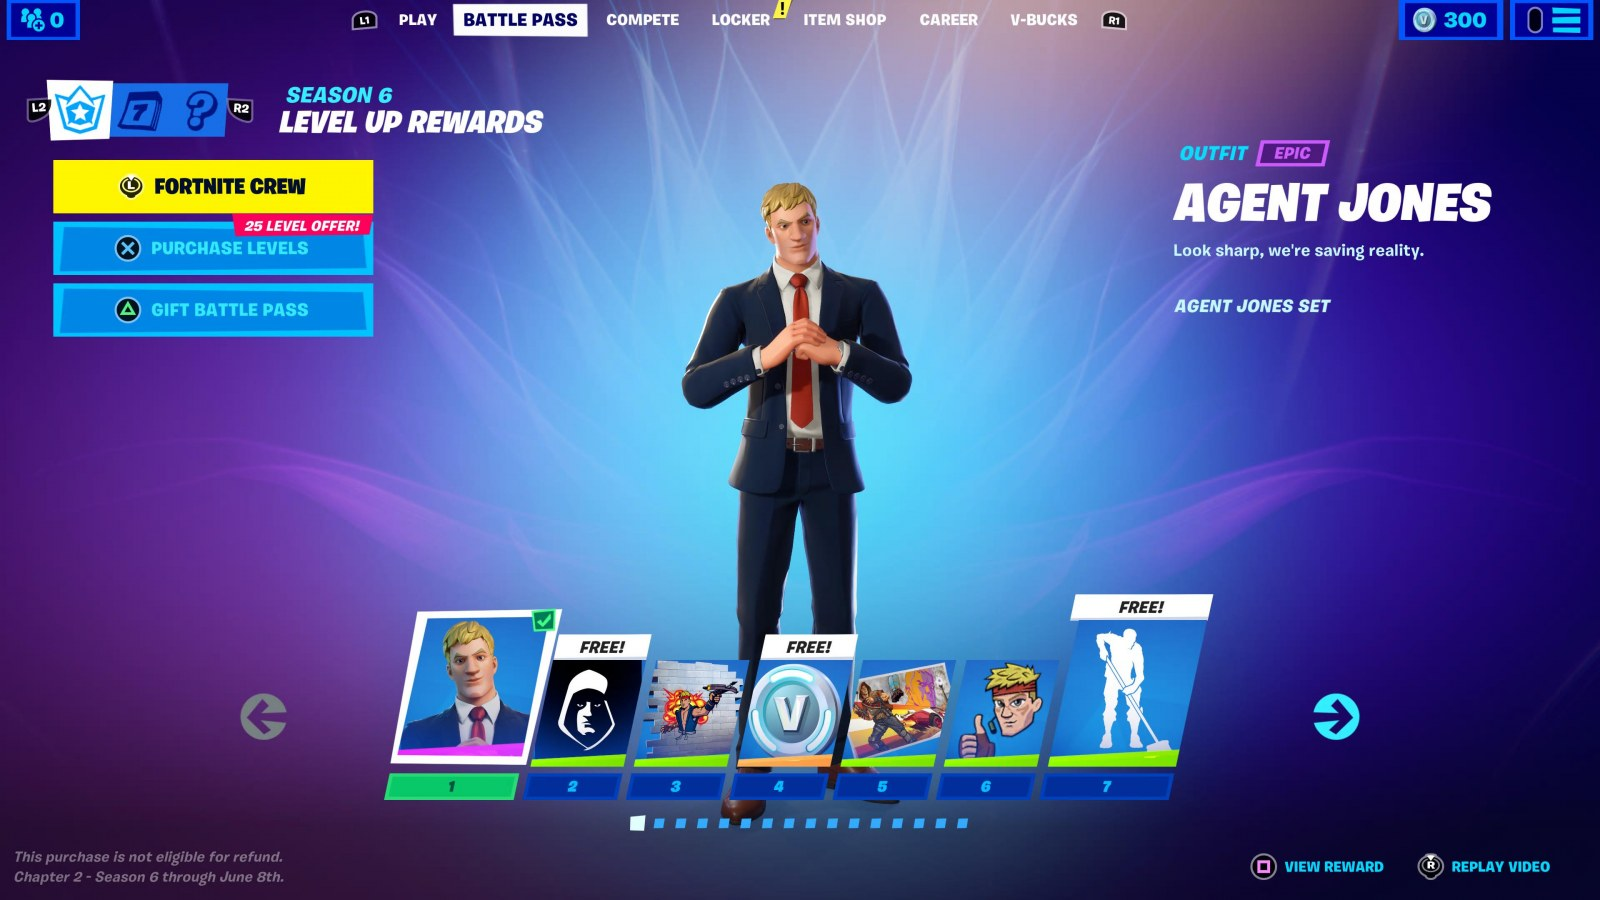 It Wont Let Me Buy The Fortnite Battle Pass Fortnite Chapter 2 Season 6 Battle Pass Skins To Tier 100 Lara Croft Raven And More